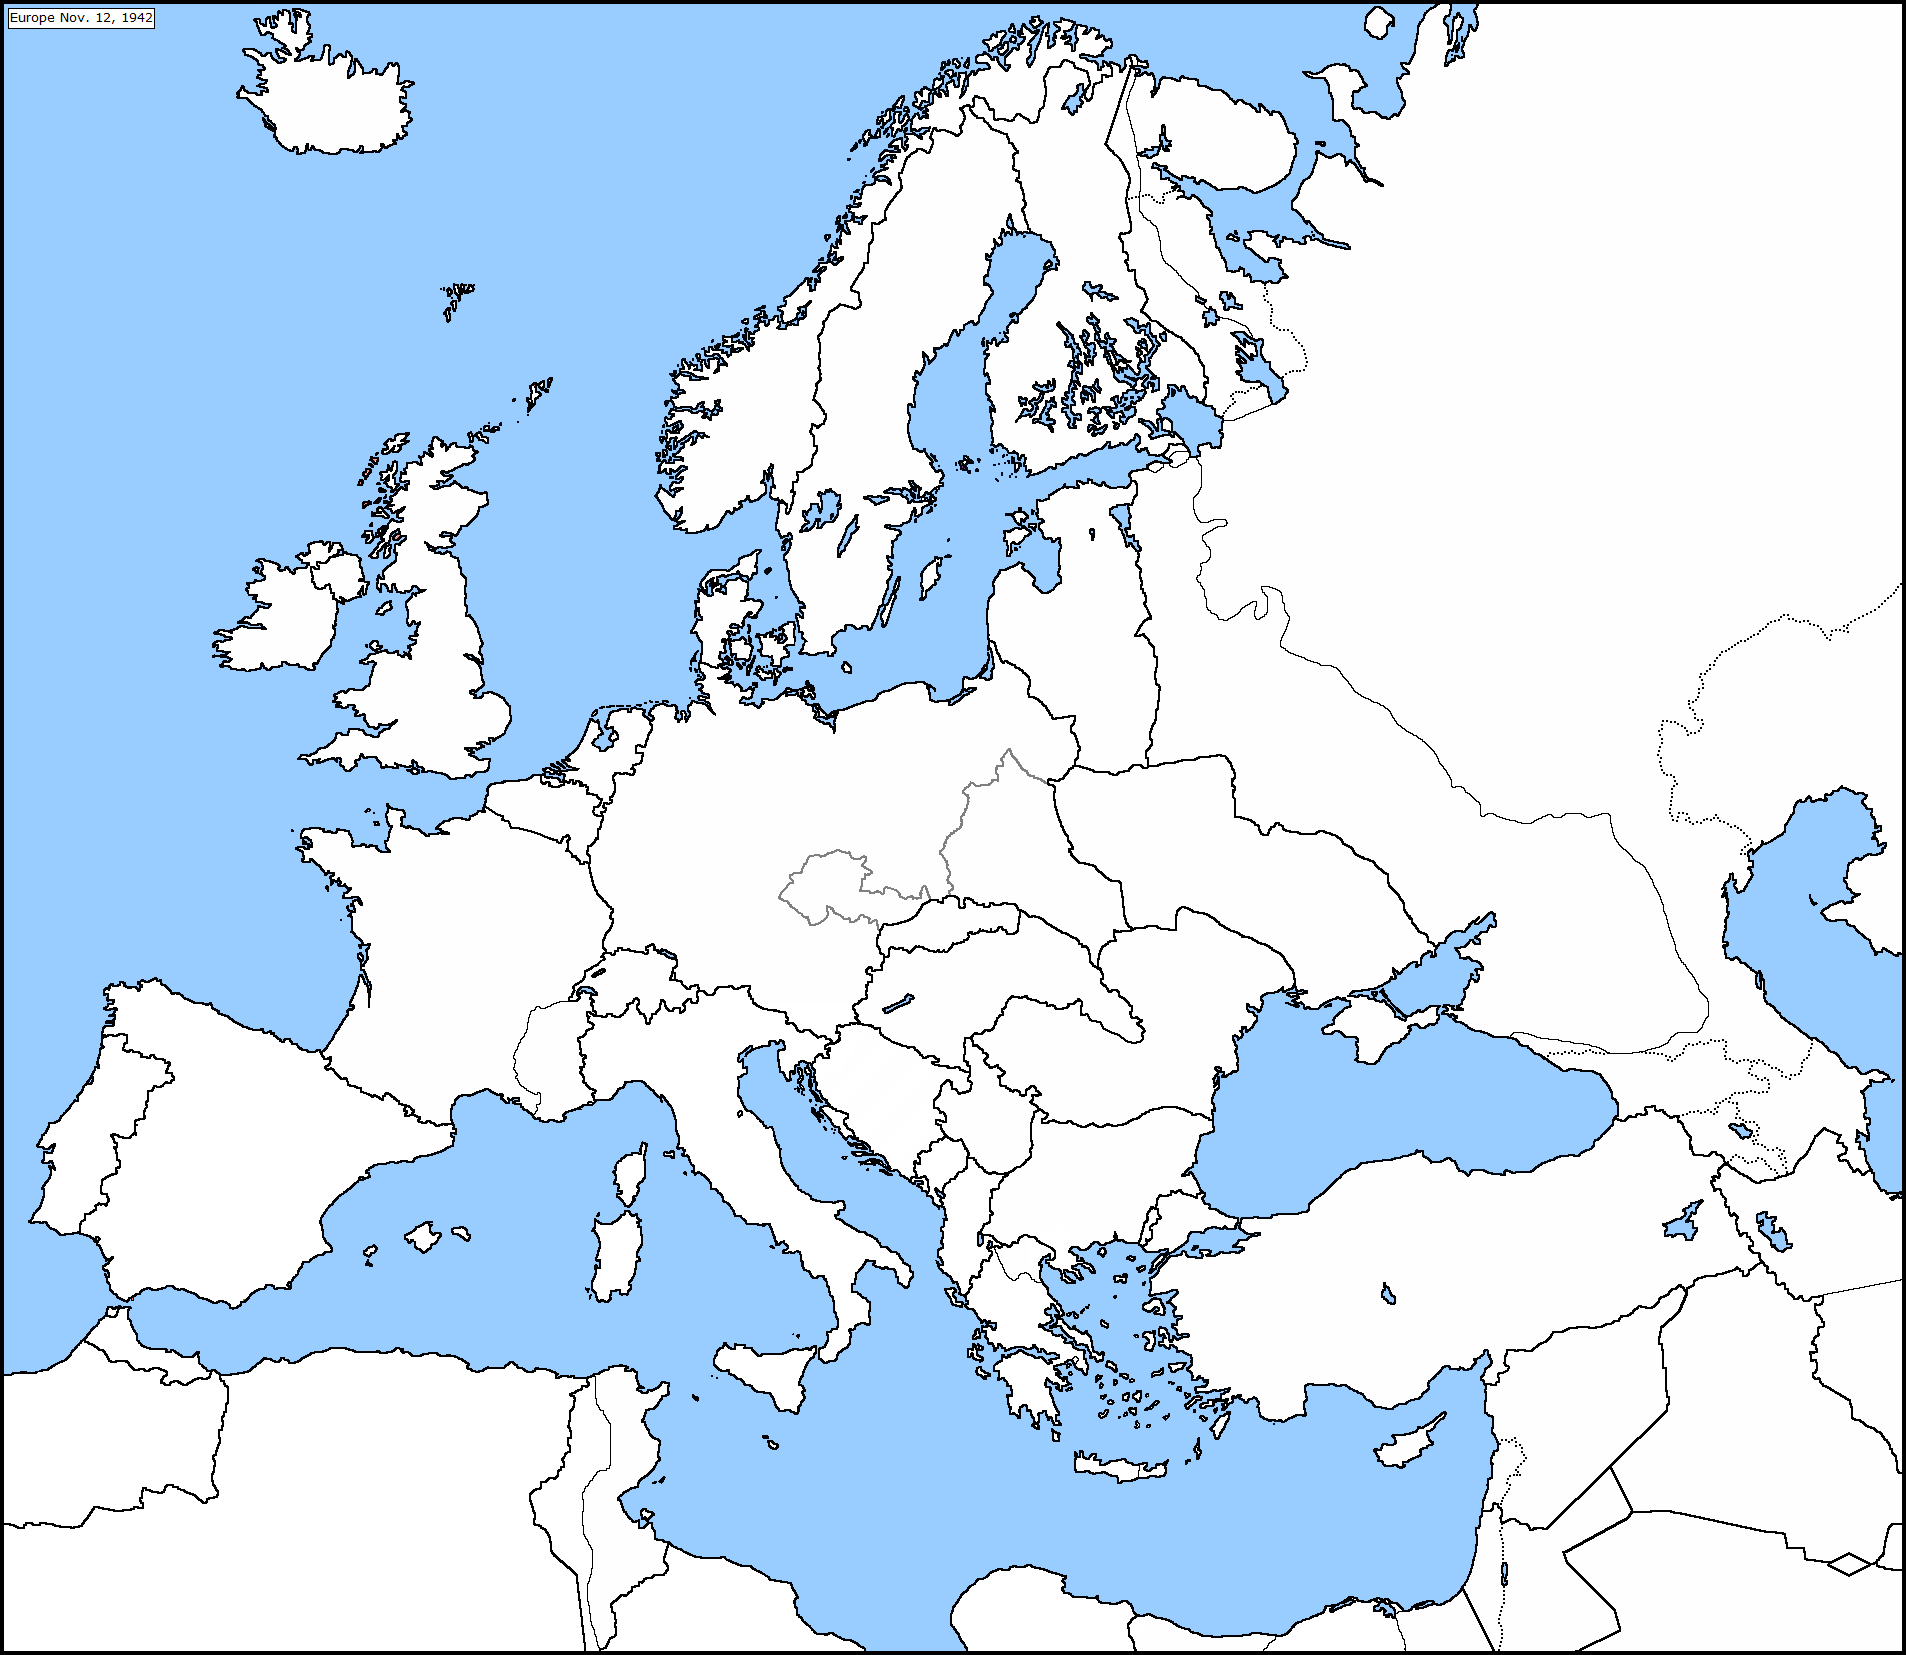 blank map of europe 1942 Blank Europe Map 1942 by CTK Aquila on DeviantArt